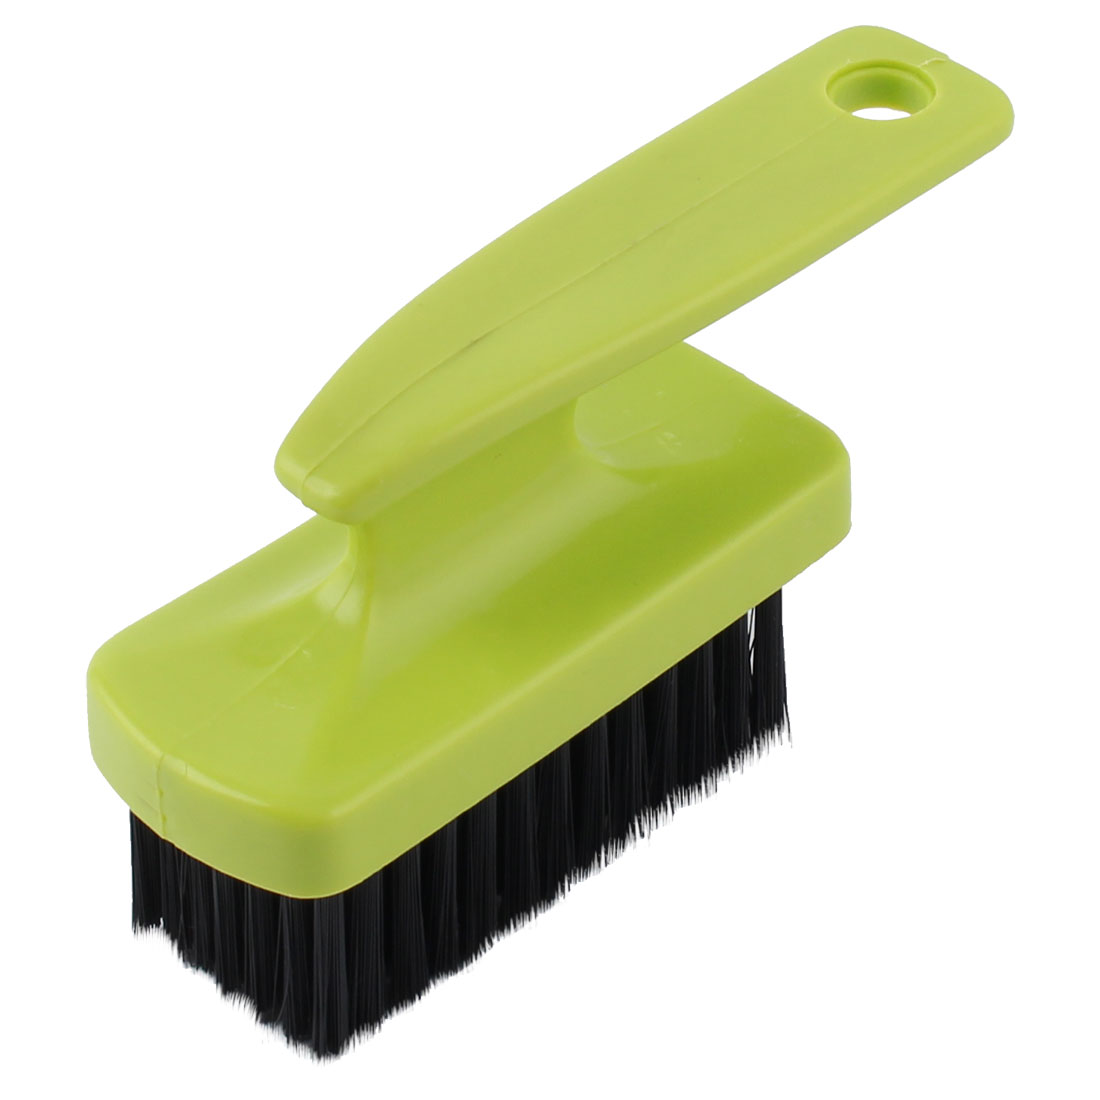 Home Laundry Plastic Handle Shoes Clothes Washing Cleaning Scrubbing Brush Green